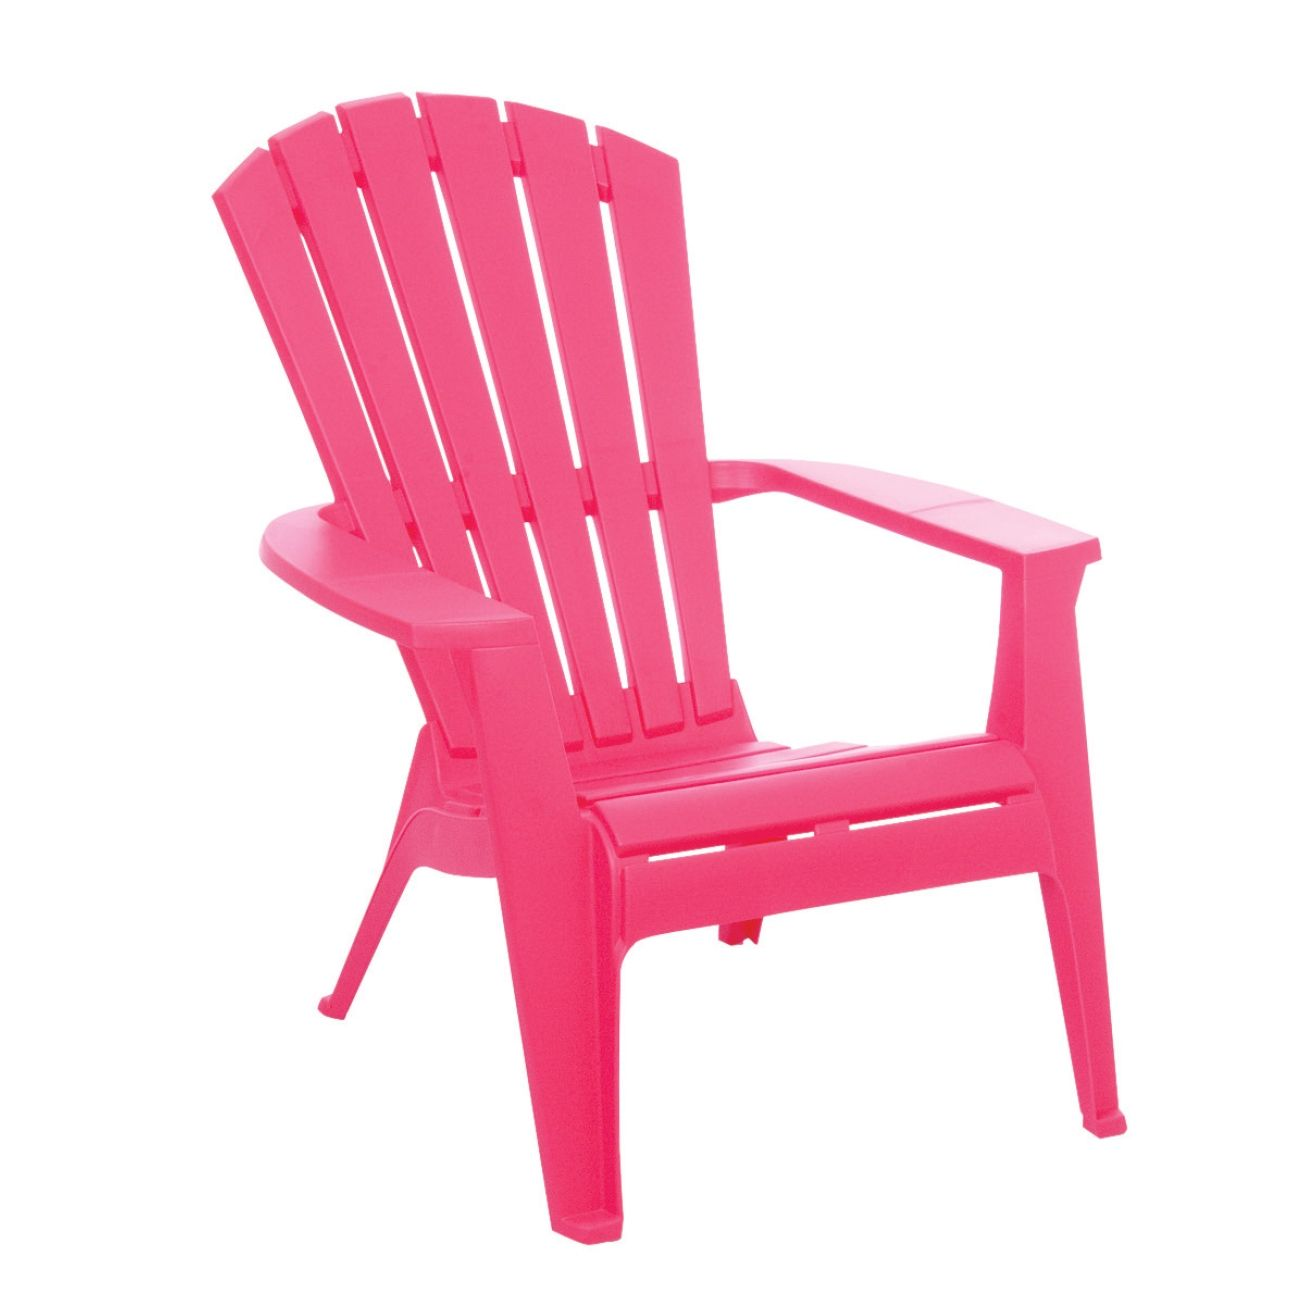 24 99 Adams Adirondack Stacking Chair In Pink 8370 07